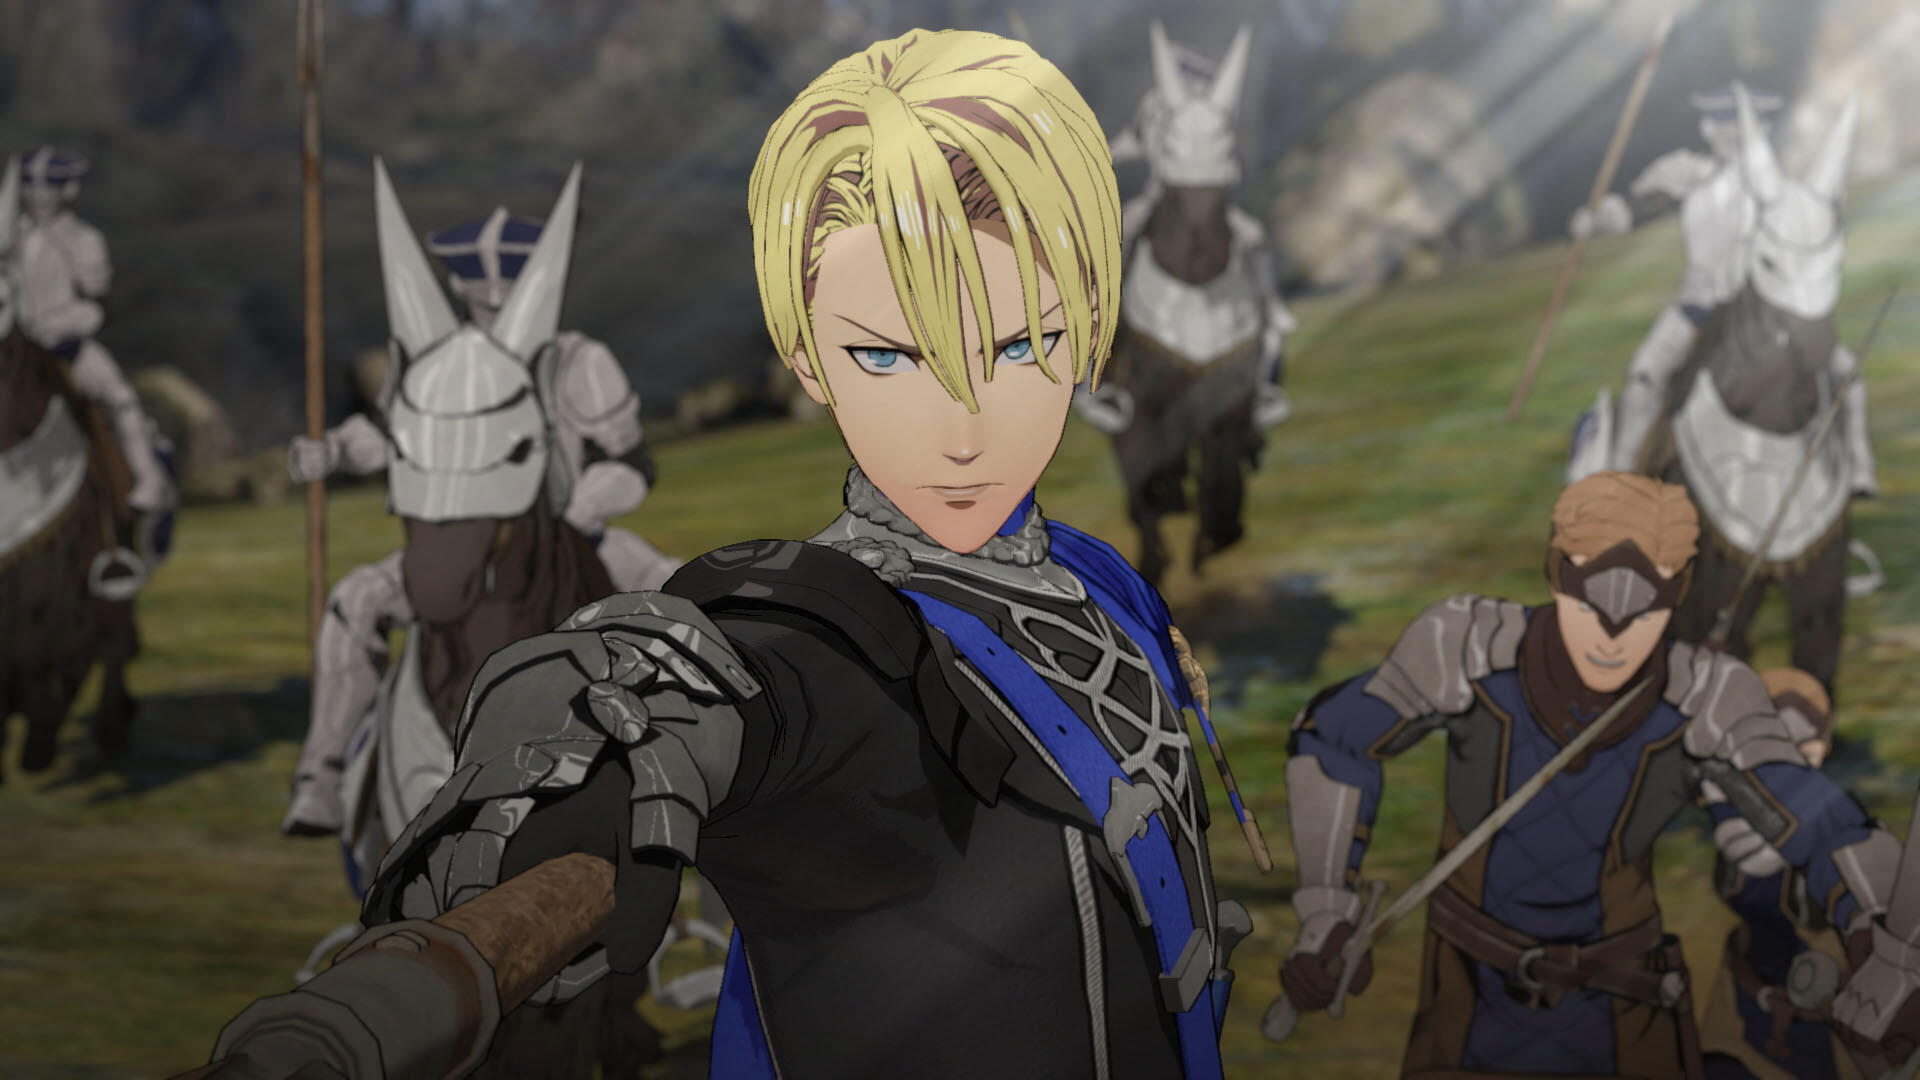 Confirmed: Fire Emblem: Three Houses Has Same-Sex Romance Options